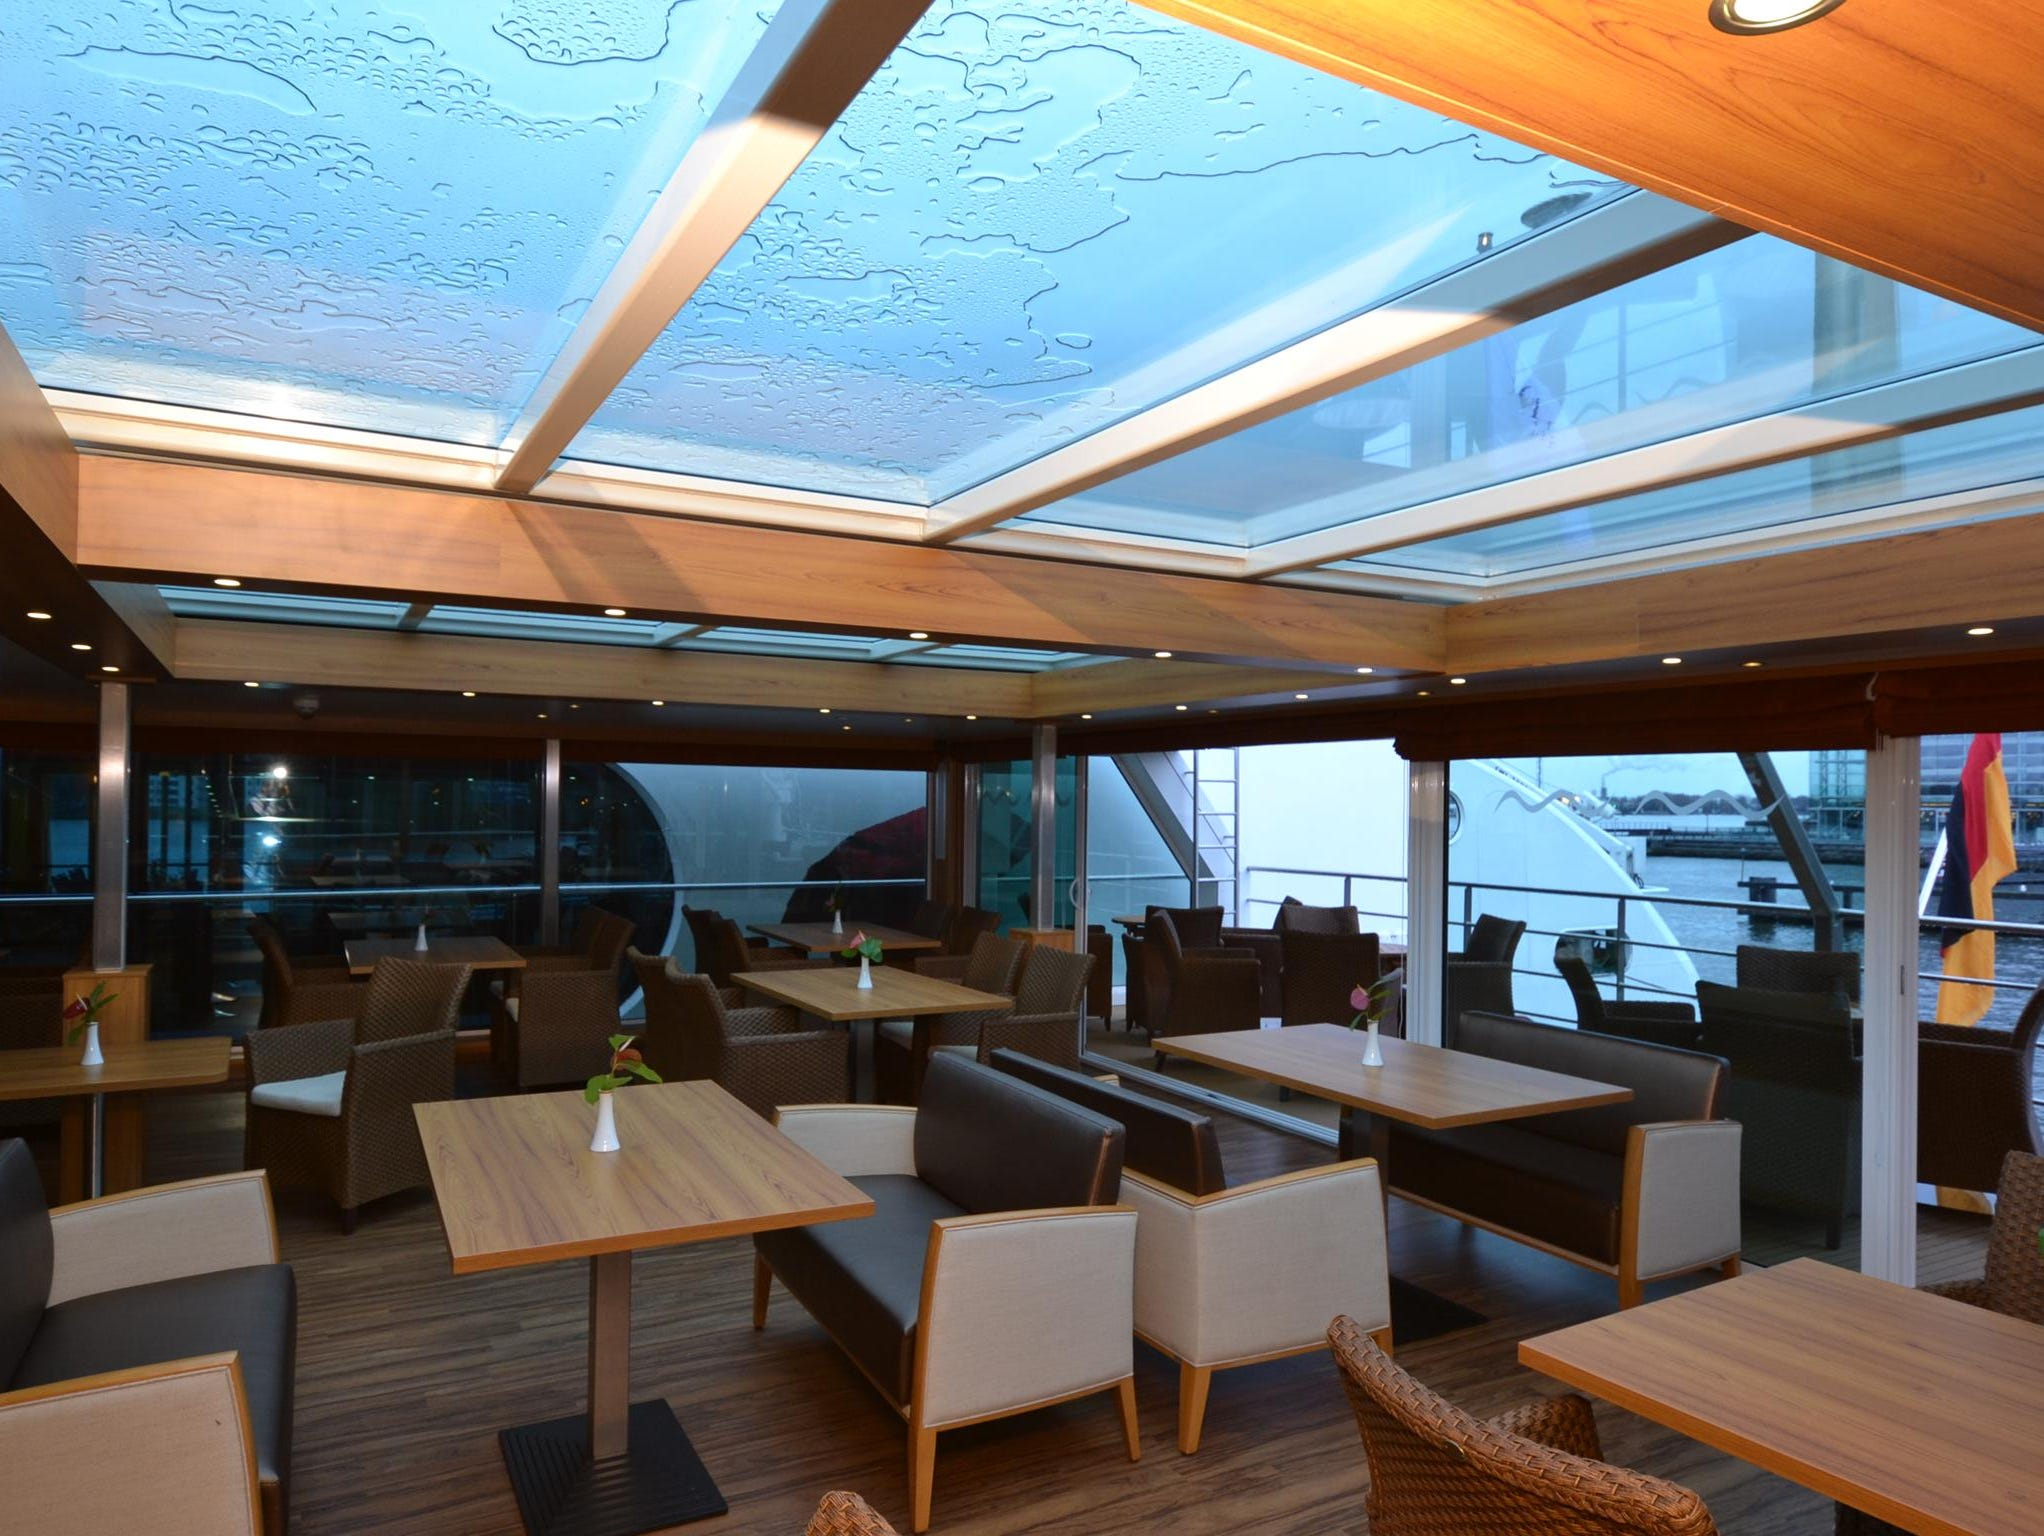 In an innovation for river ships, the River Discovery II's Captain's Club has a retractable glass roof that can be opened as the ship is sailing.